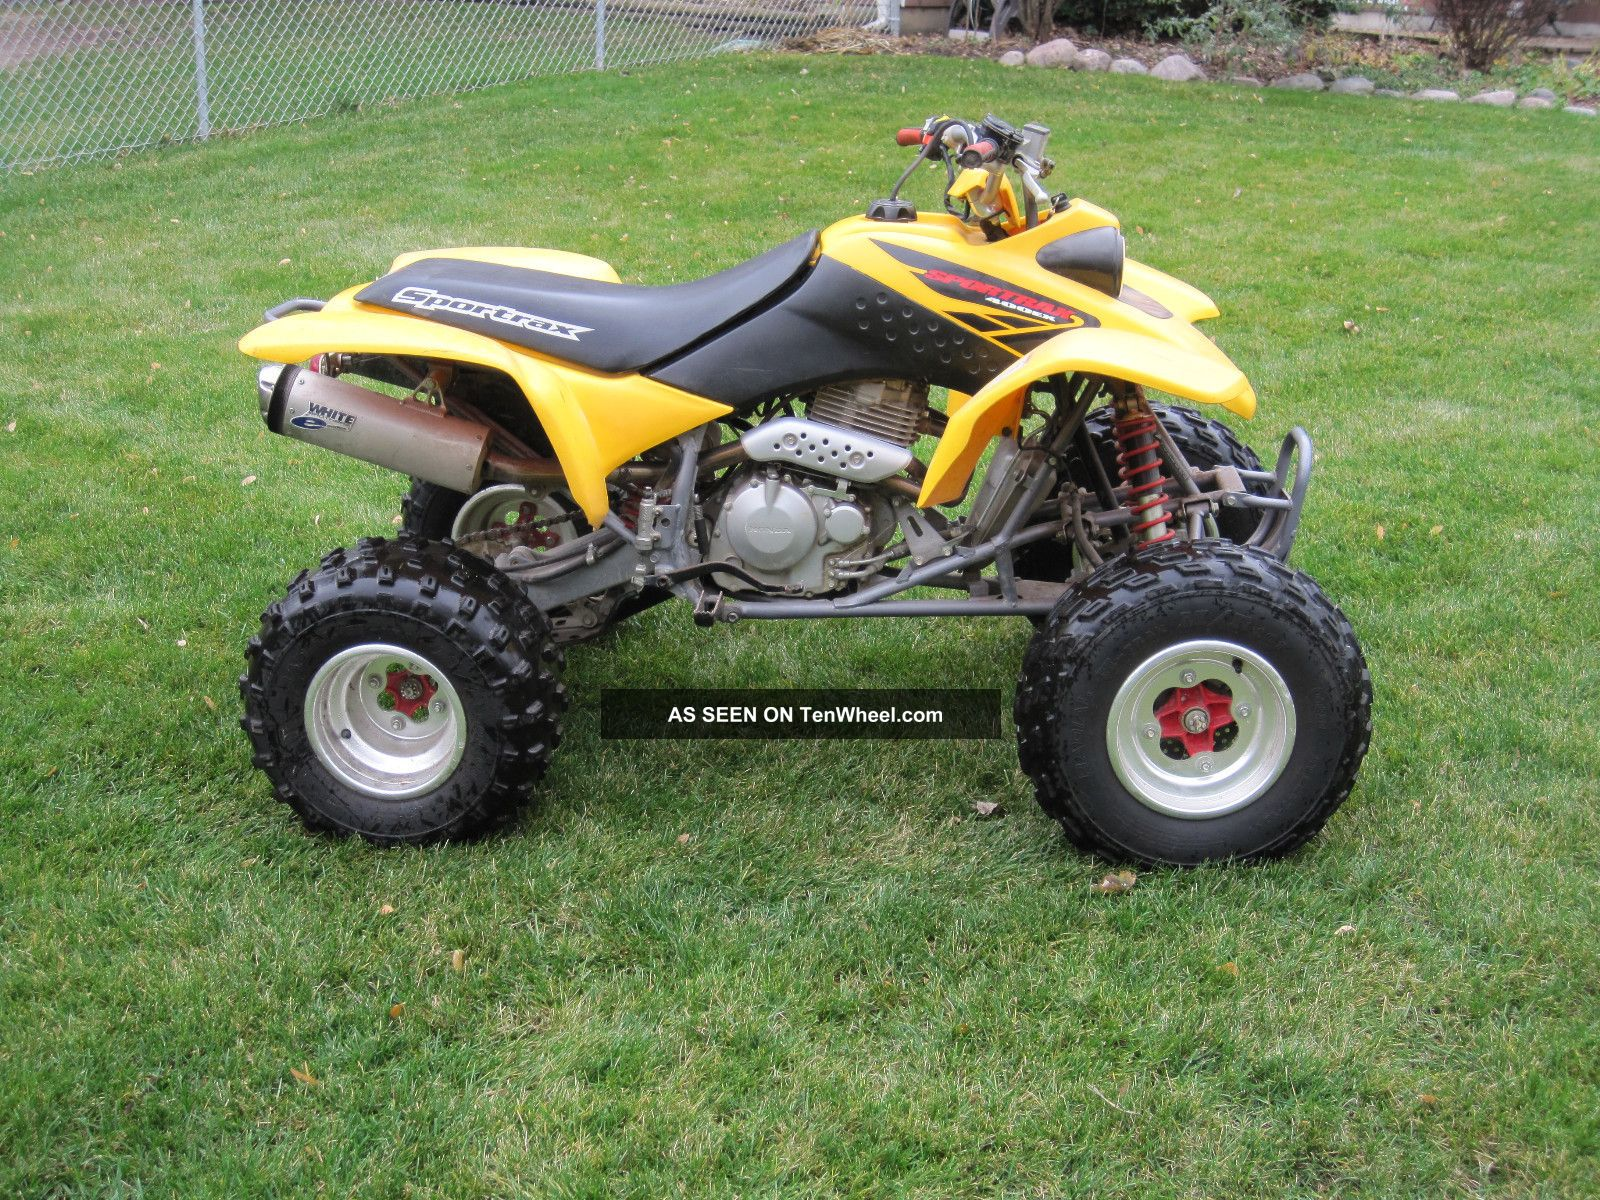 Polaris Trail Boss 250 Wiring Diagram 1991 in addition Ecm Wiring Diagram For 1993 Chevy C1500 4 3 likewise Polaris Atv Fuel Filter Location as well Brazilian Tapir also Men Trapped Inside Uss Arizona. on trx 90 wiring diagram get free image about